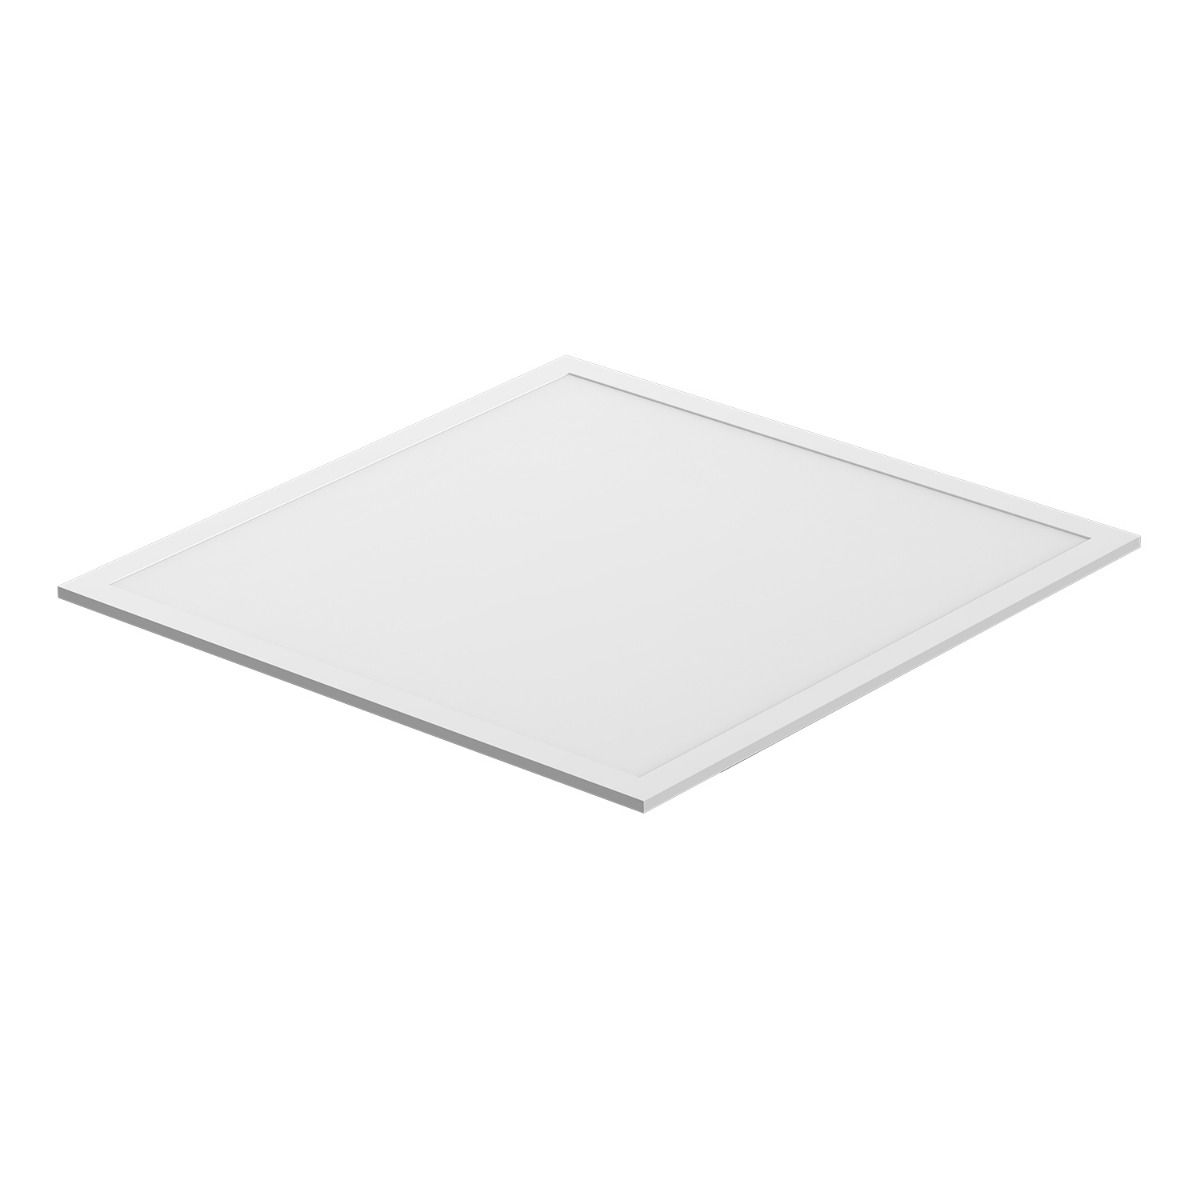 Noxion LED Panel Delta Pro Highlum V2.0 Xitanium DALI 40W 60x60cm 4000K 5480lm UGR <19 | Dali Dimmable - Cool White - Replaces 4x18W